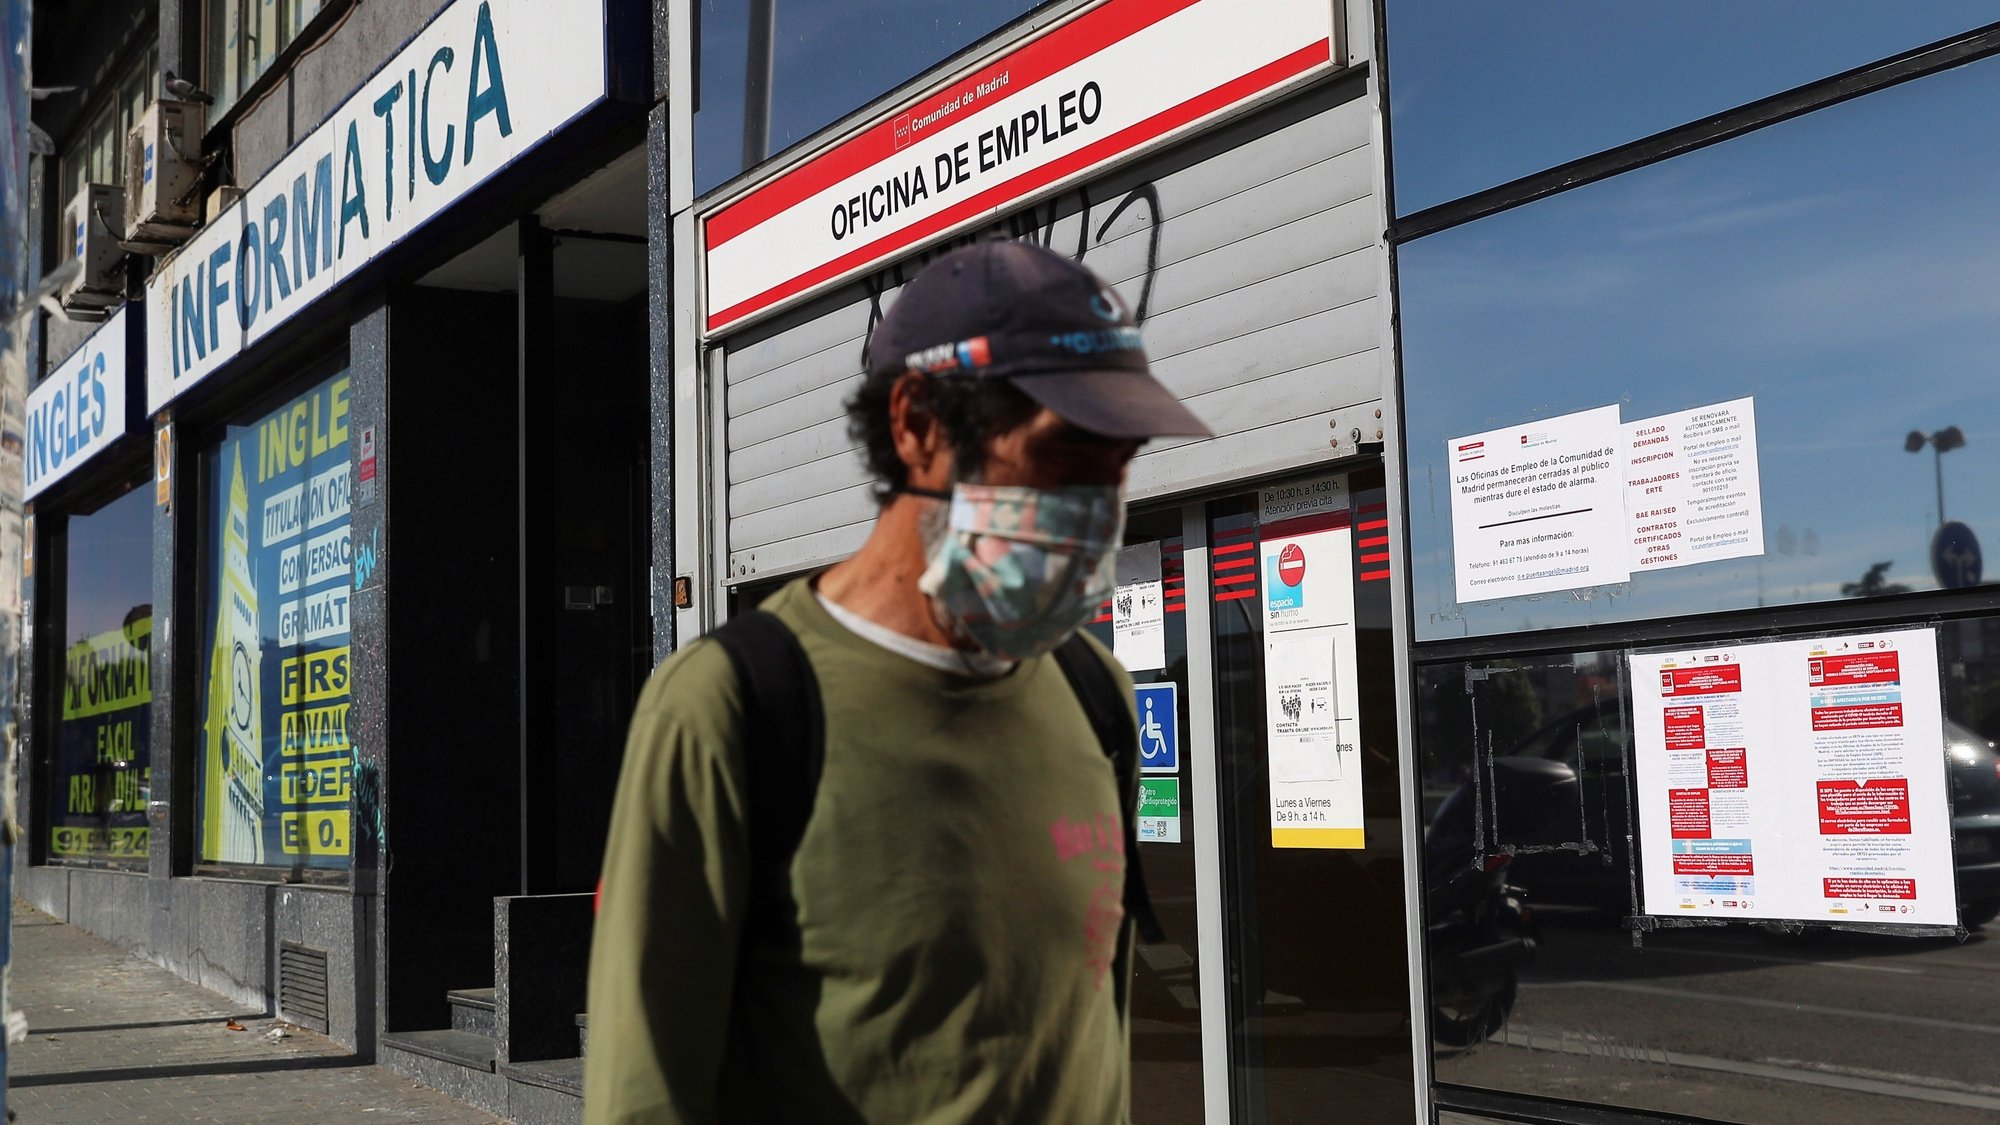 epa08402017 A man wearing a protective face mask walks past a public employment office in Madrid, Spain, 05 May 2020, amid the ongoing coronavirus COVID-19 pandemic. The number of unemployed people rose by 282,891 to reach 3.83 million in April, the highest figures reached in April since 2016. Spain is under lockdown in an attempt to fight the spread of the pandemic COVID-19 disease caused by the SARS-CoV-2 coronavirus.  EPA/RODRIGO JIMENEZ